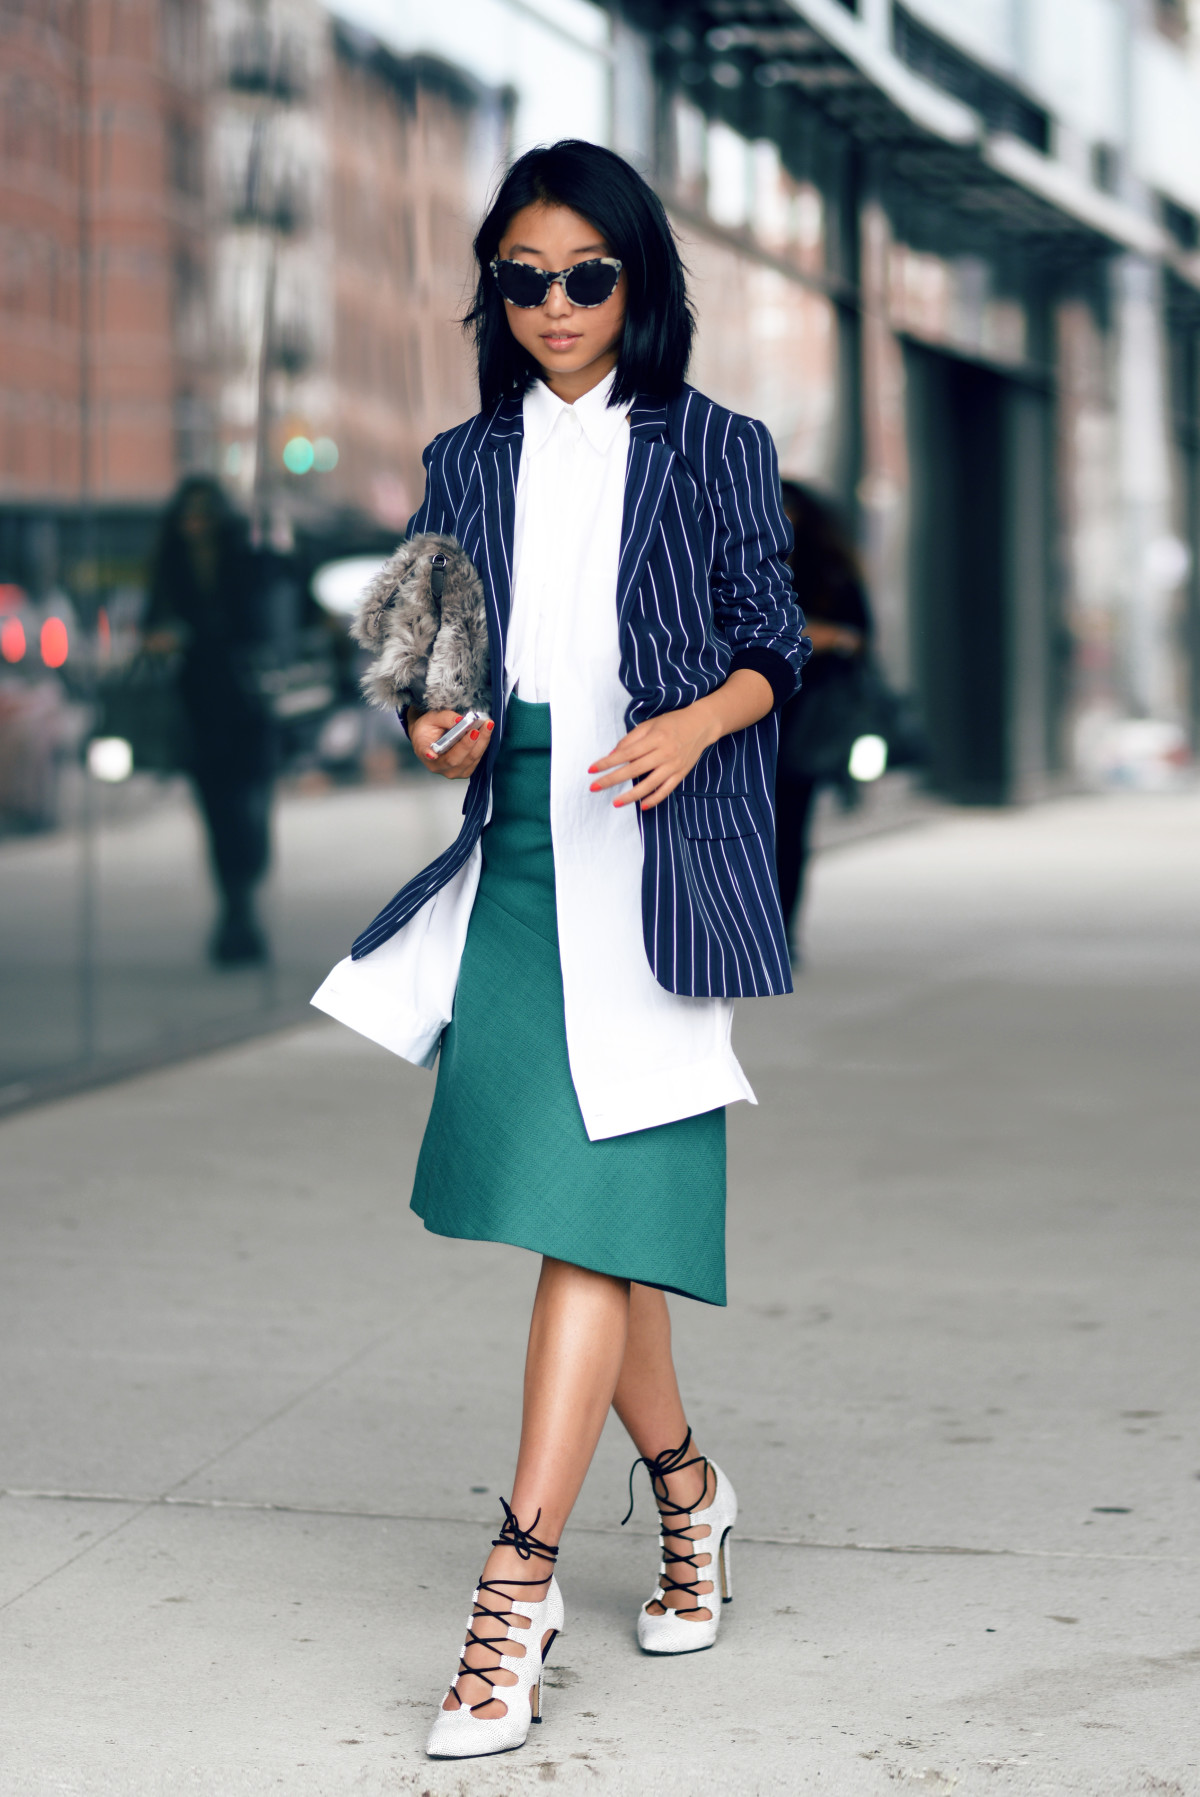 Margaret Zhang is wearing a pinstripe blazer from Tibi, shirt from Dion Lee, wool skirt from Jil Sander, bag from Elizabeth and James, sunglasses from Illesteva Claire and white lace up shoes from Mode Collective